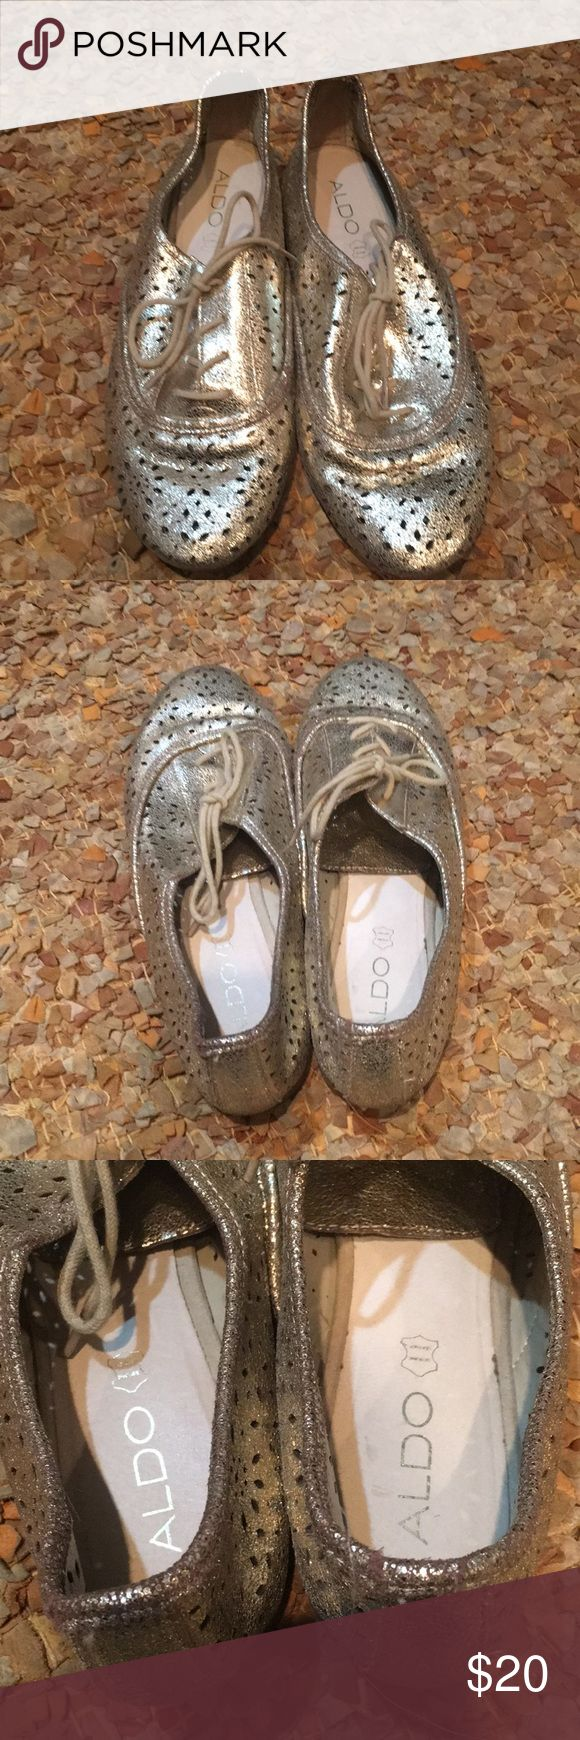 Aldo metallic gold lace oxfords 10 These have been worn once!  Also Sz 10 Metallic gold Lace oxfords Cut out design Great piece to add to your shoe collection... wear year round! Flat... for comfort! Aldo Shoes Flats & Loafers